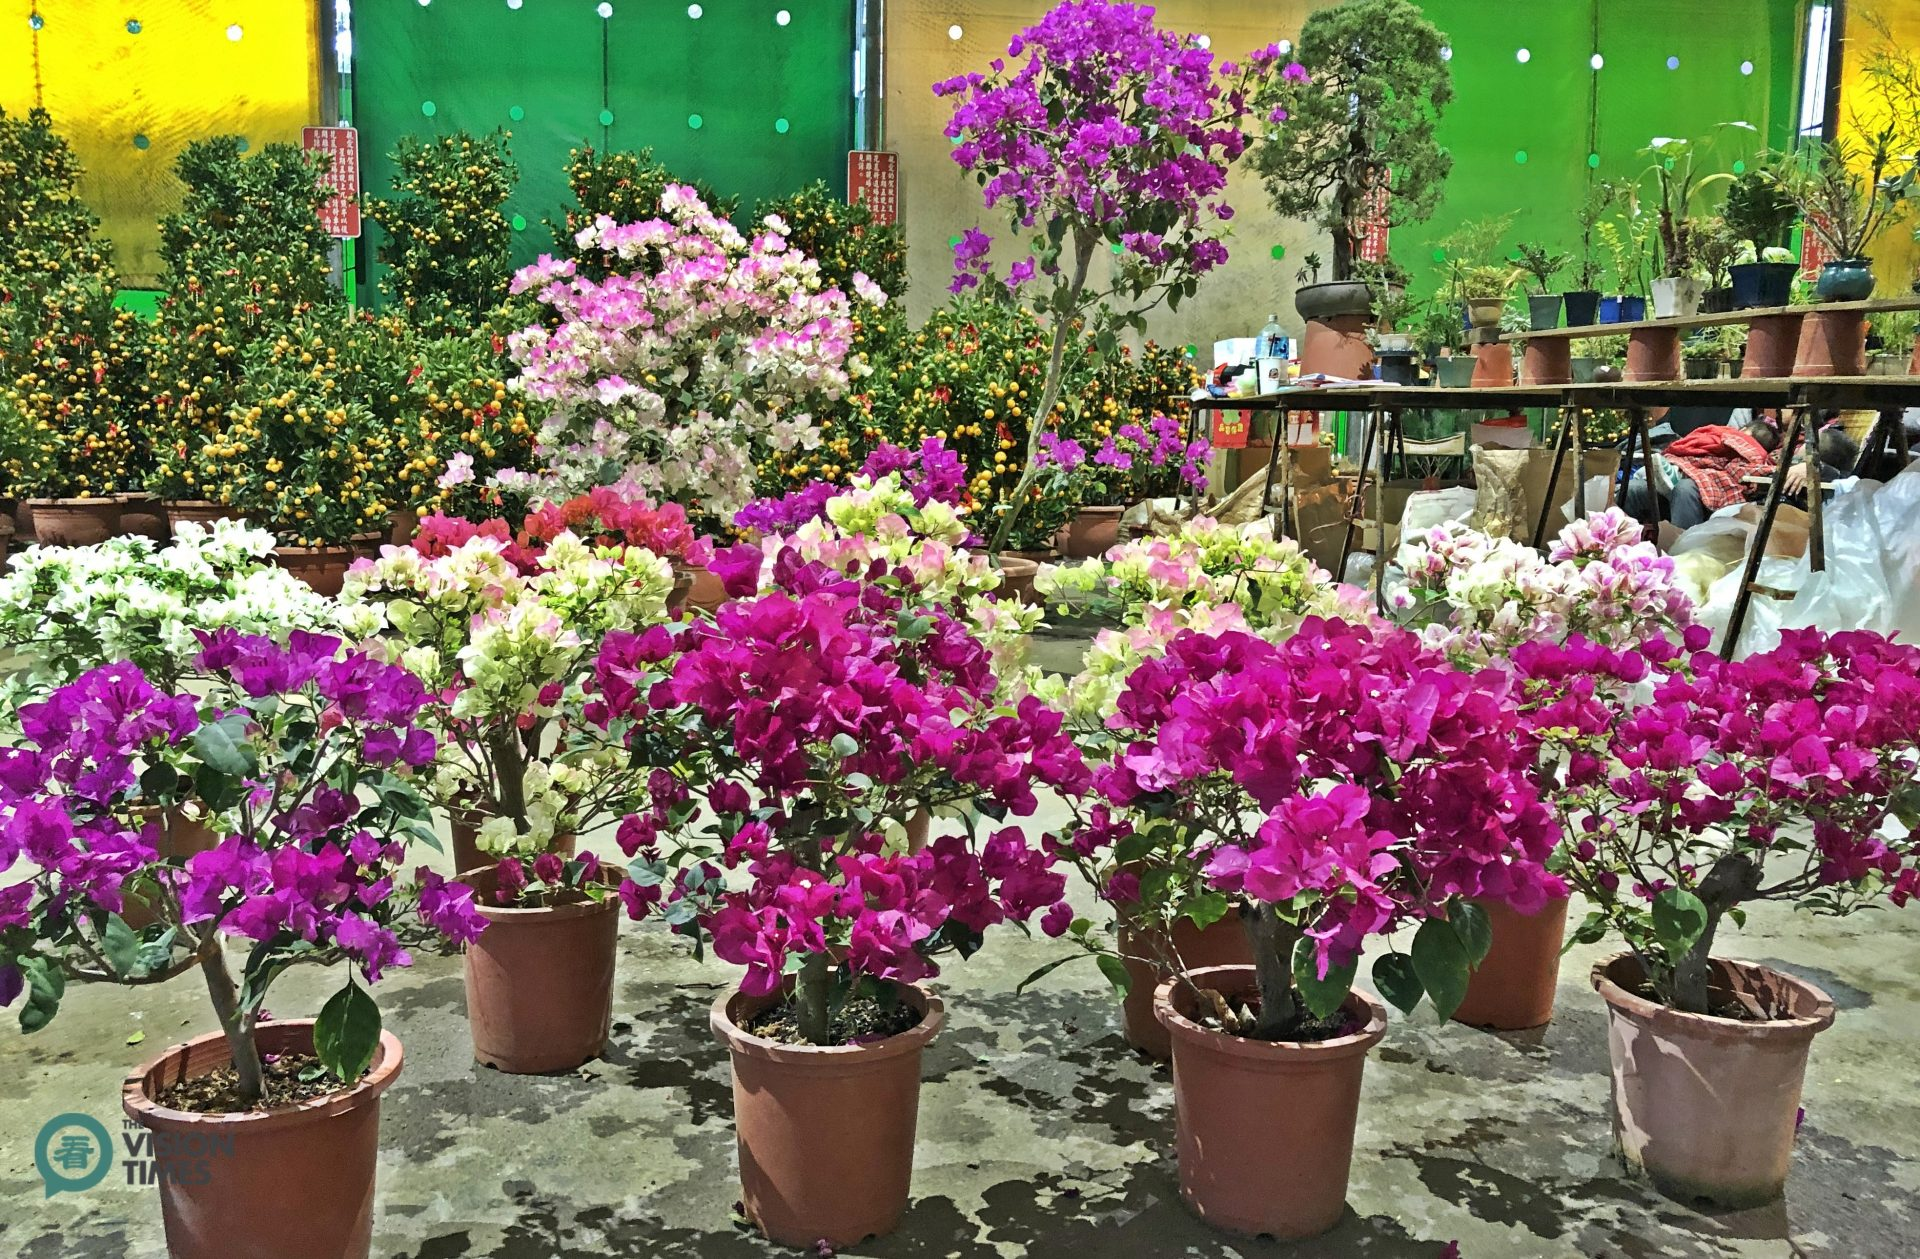 There are 200 plus stalls selling a great variety of flowers at the Flower Fair. (Image: Billy Shyu / Vision Times)